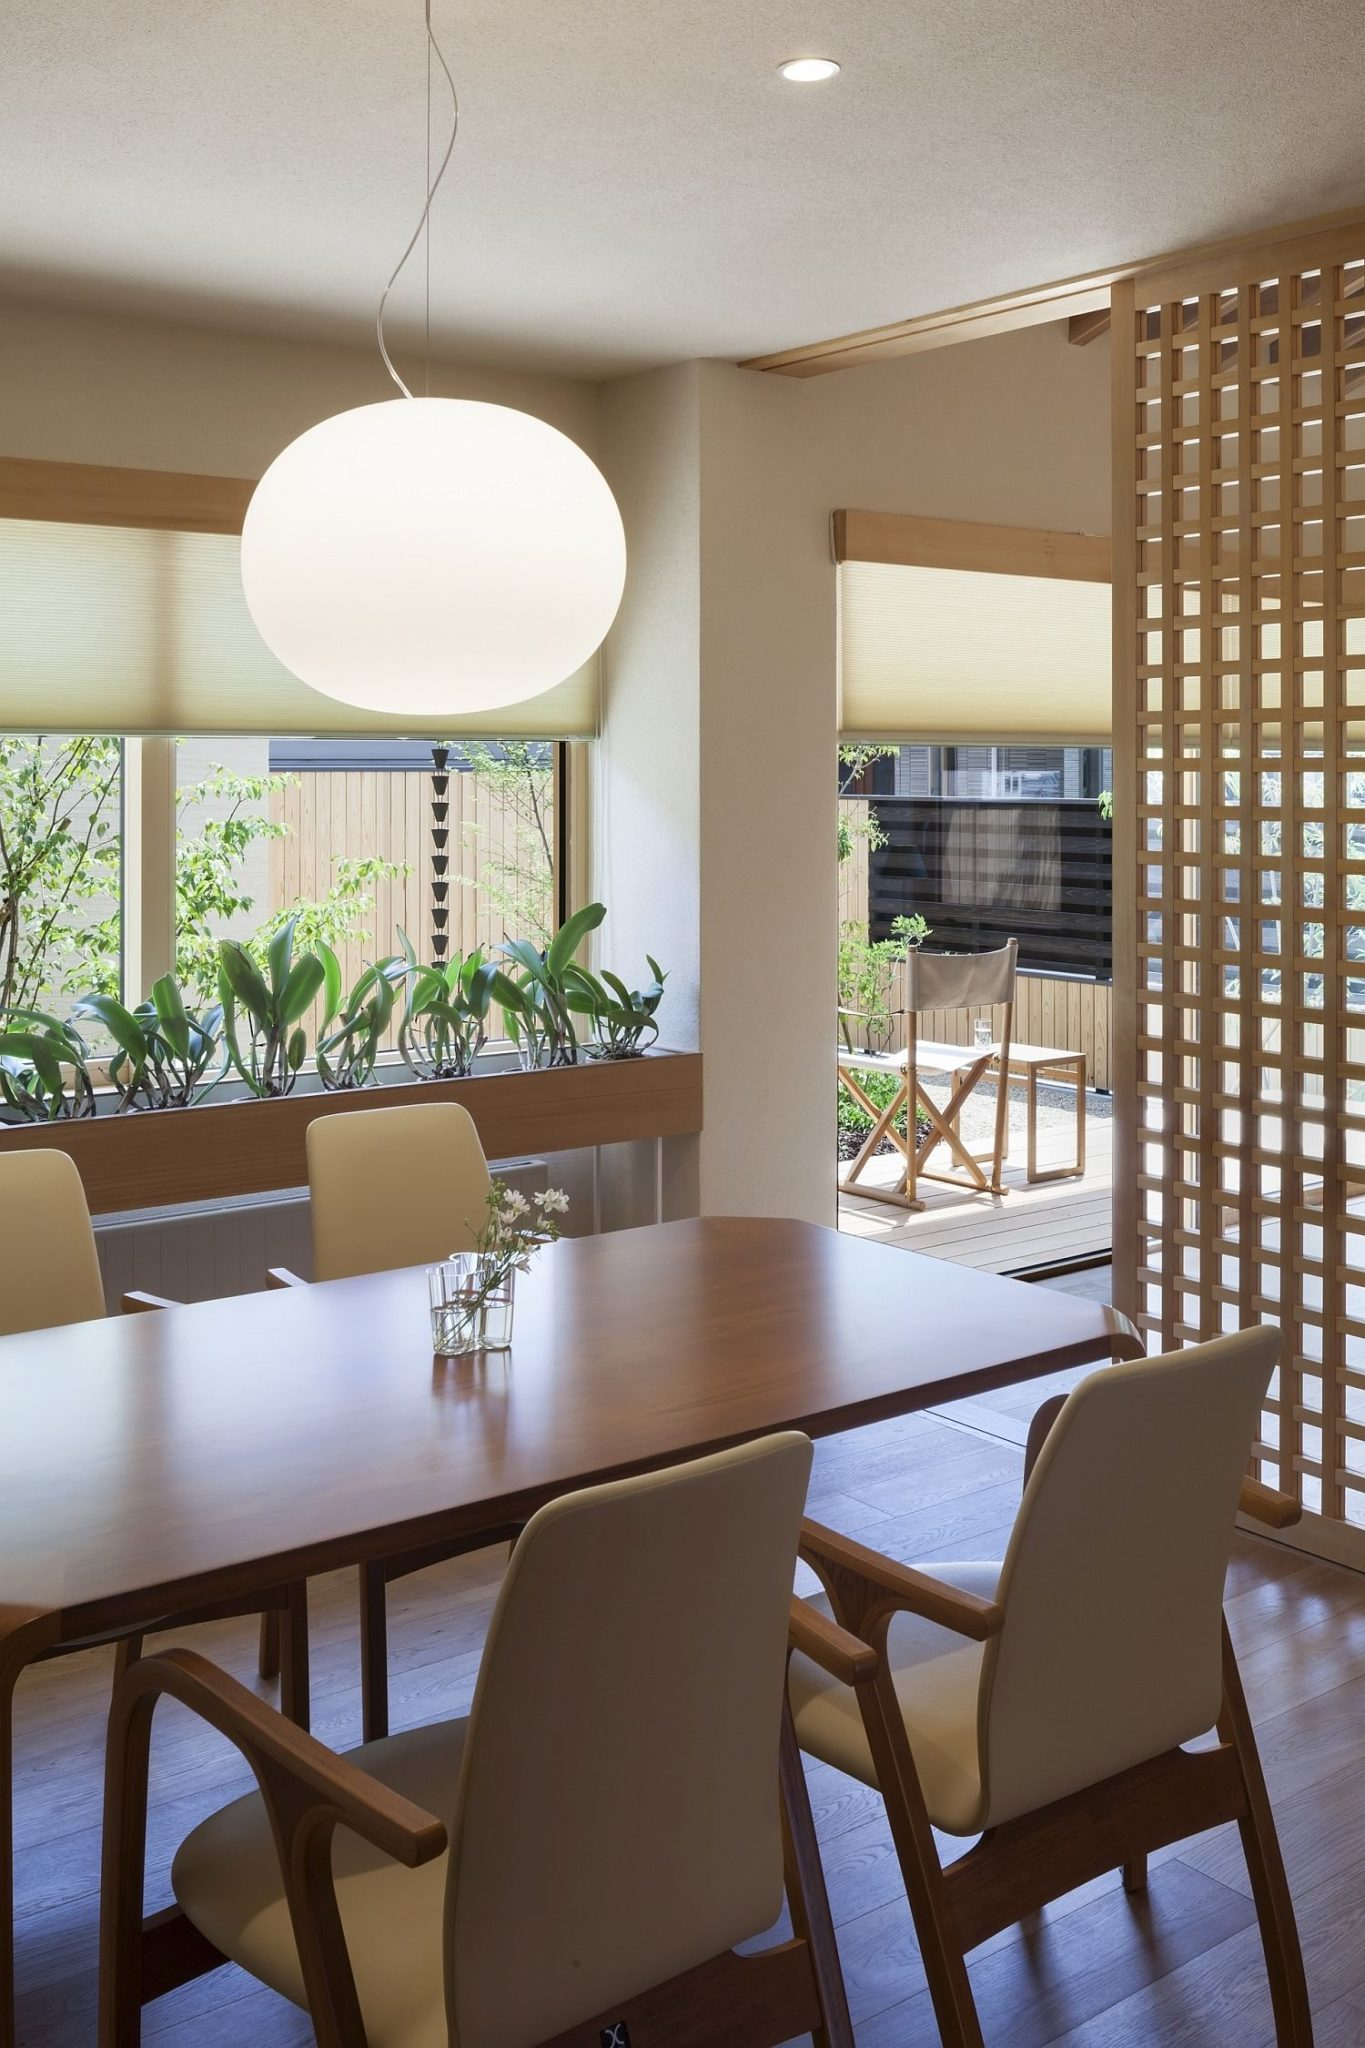 Dining-area-with-smart-pendant-lighting-and-a-cool-divider